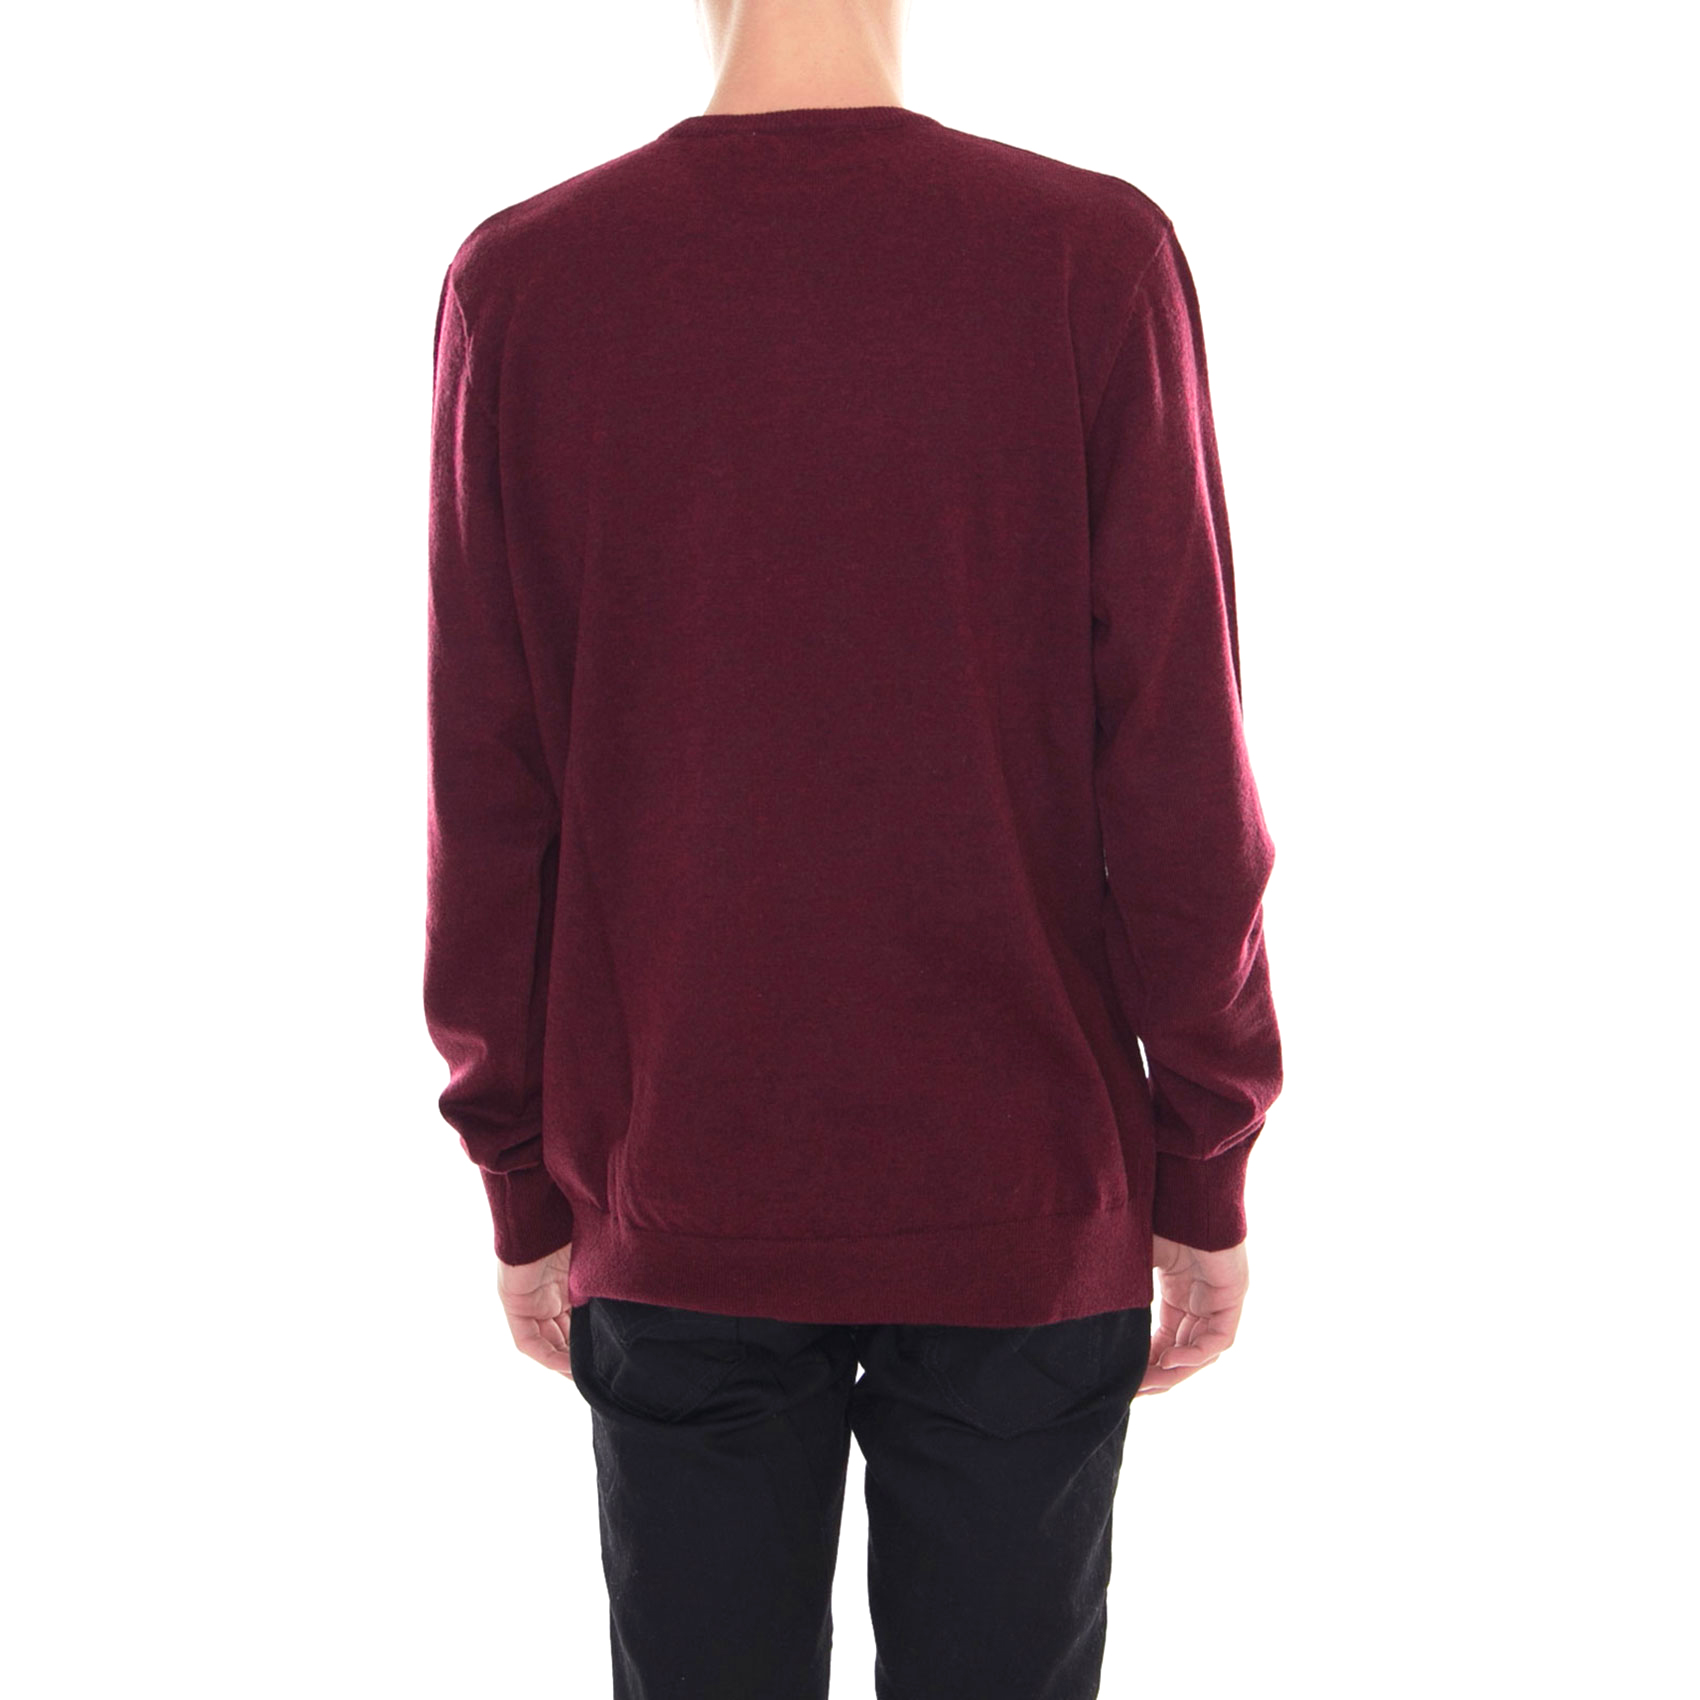 Maglione Viola Mulberry Playoff Heather Felpe Carhartt q6ax4nw7Ew